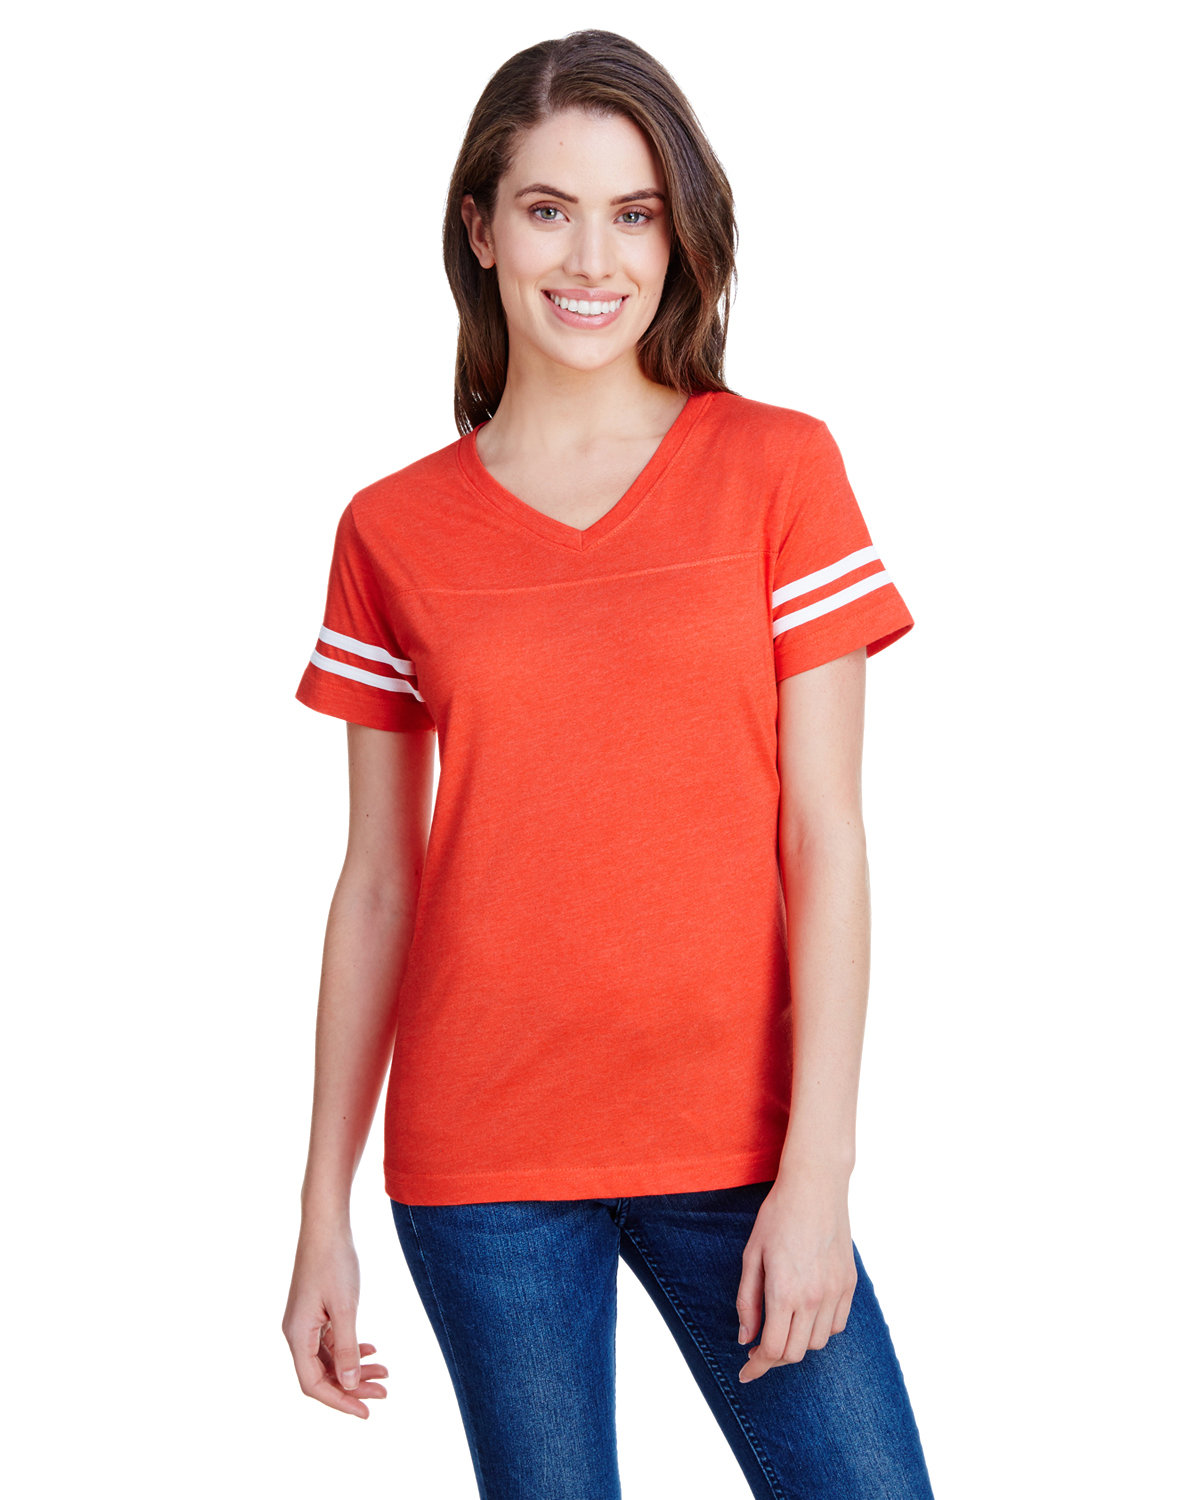 LAT Ladies' Football T-Shirt VN ORANGE/ BD WH